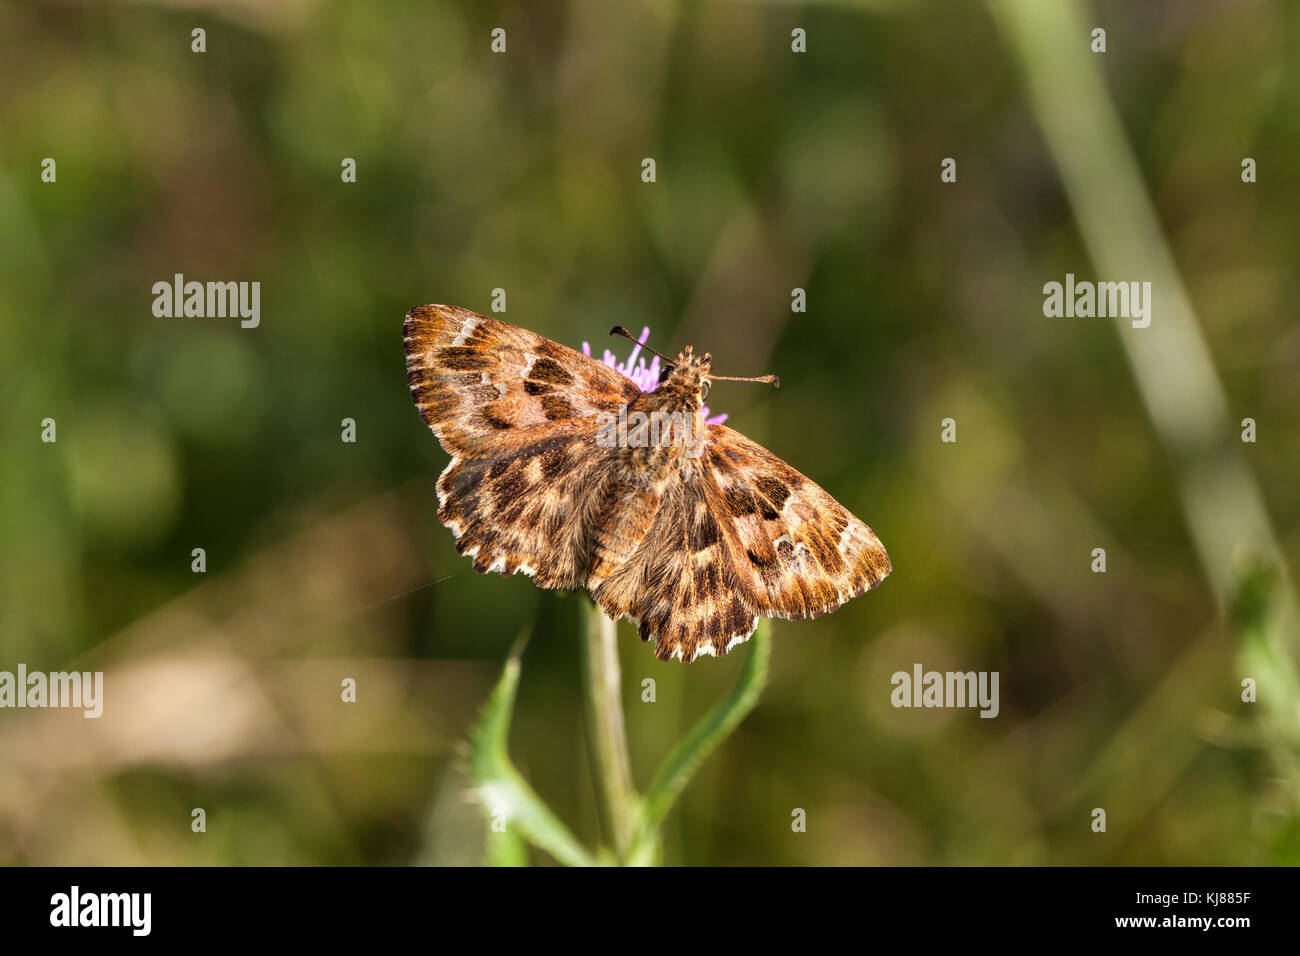 Marbled Skipper Carcharodus lavatherae basking in the sun on a flower head at Riaza in central Spain - Stock Image